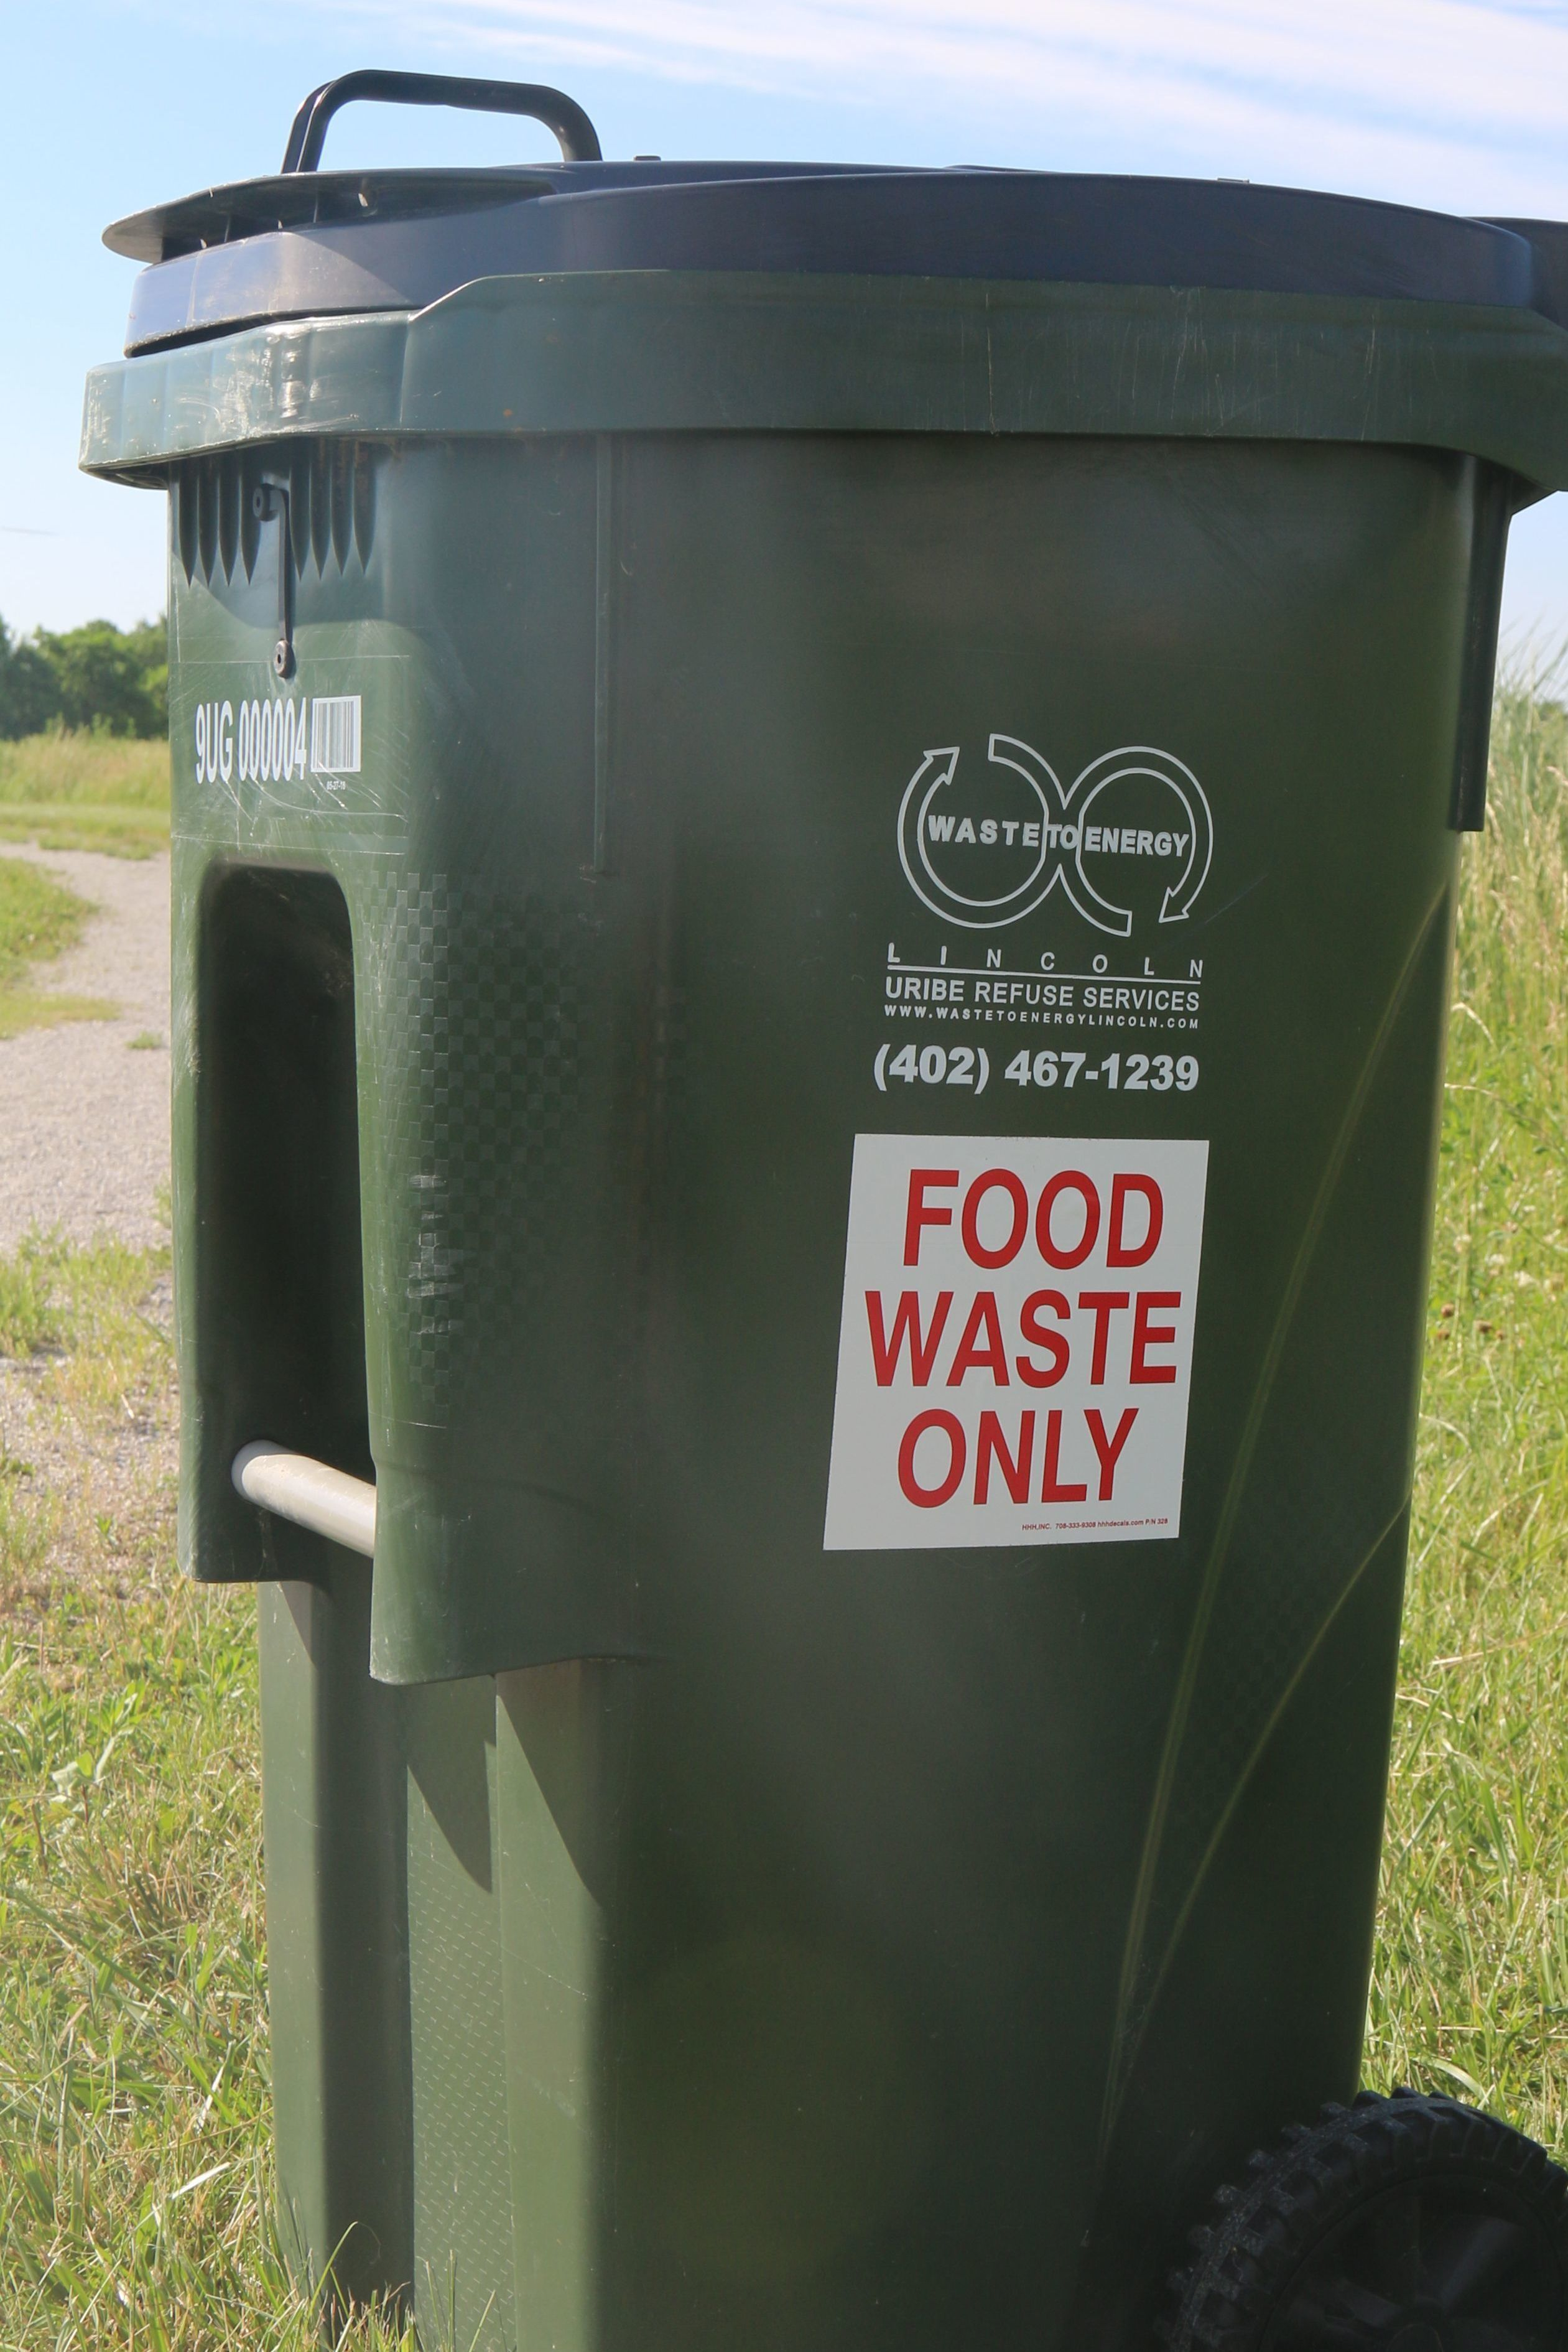 Now offering CITY WIDE Compost Services!